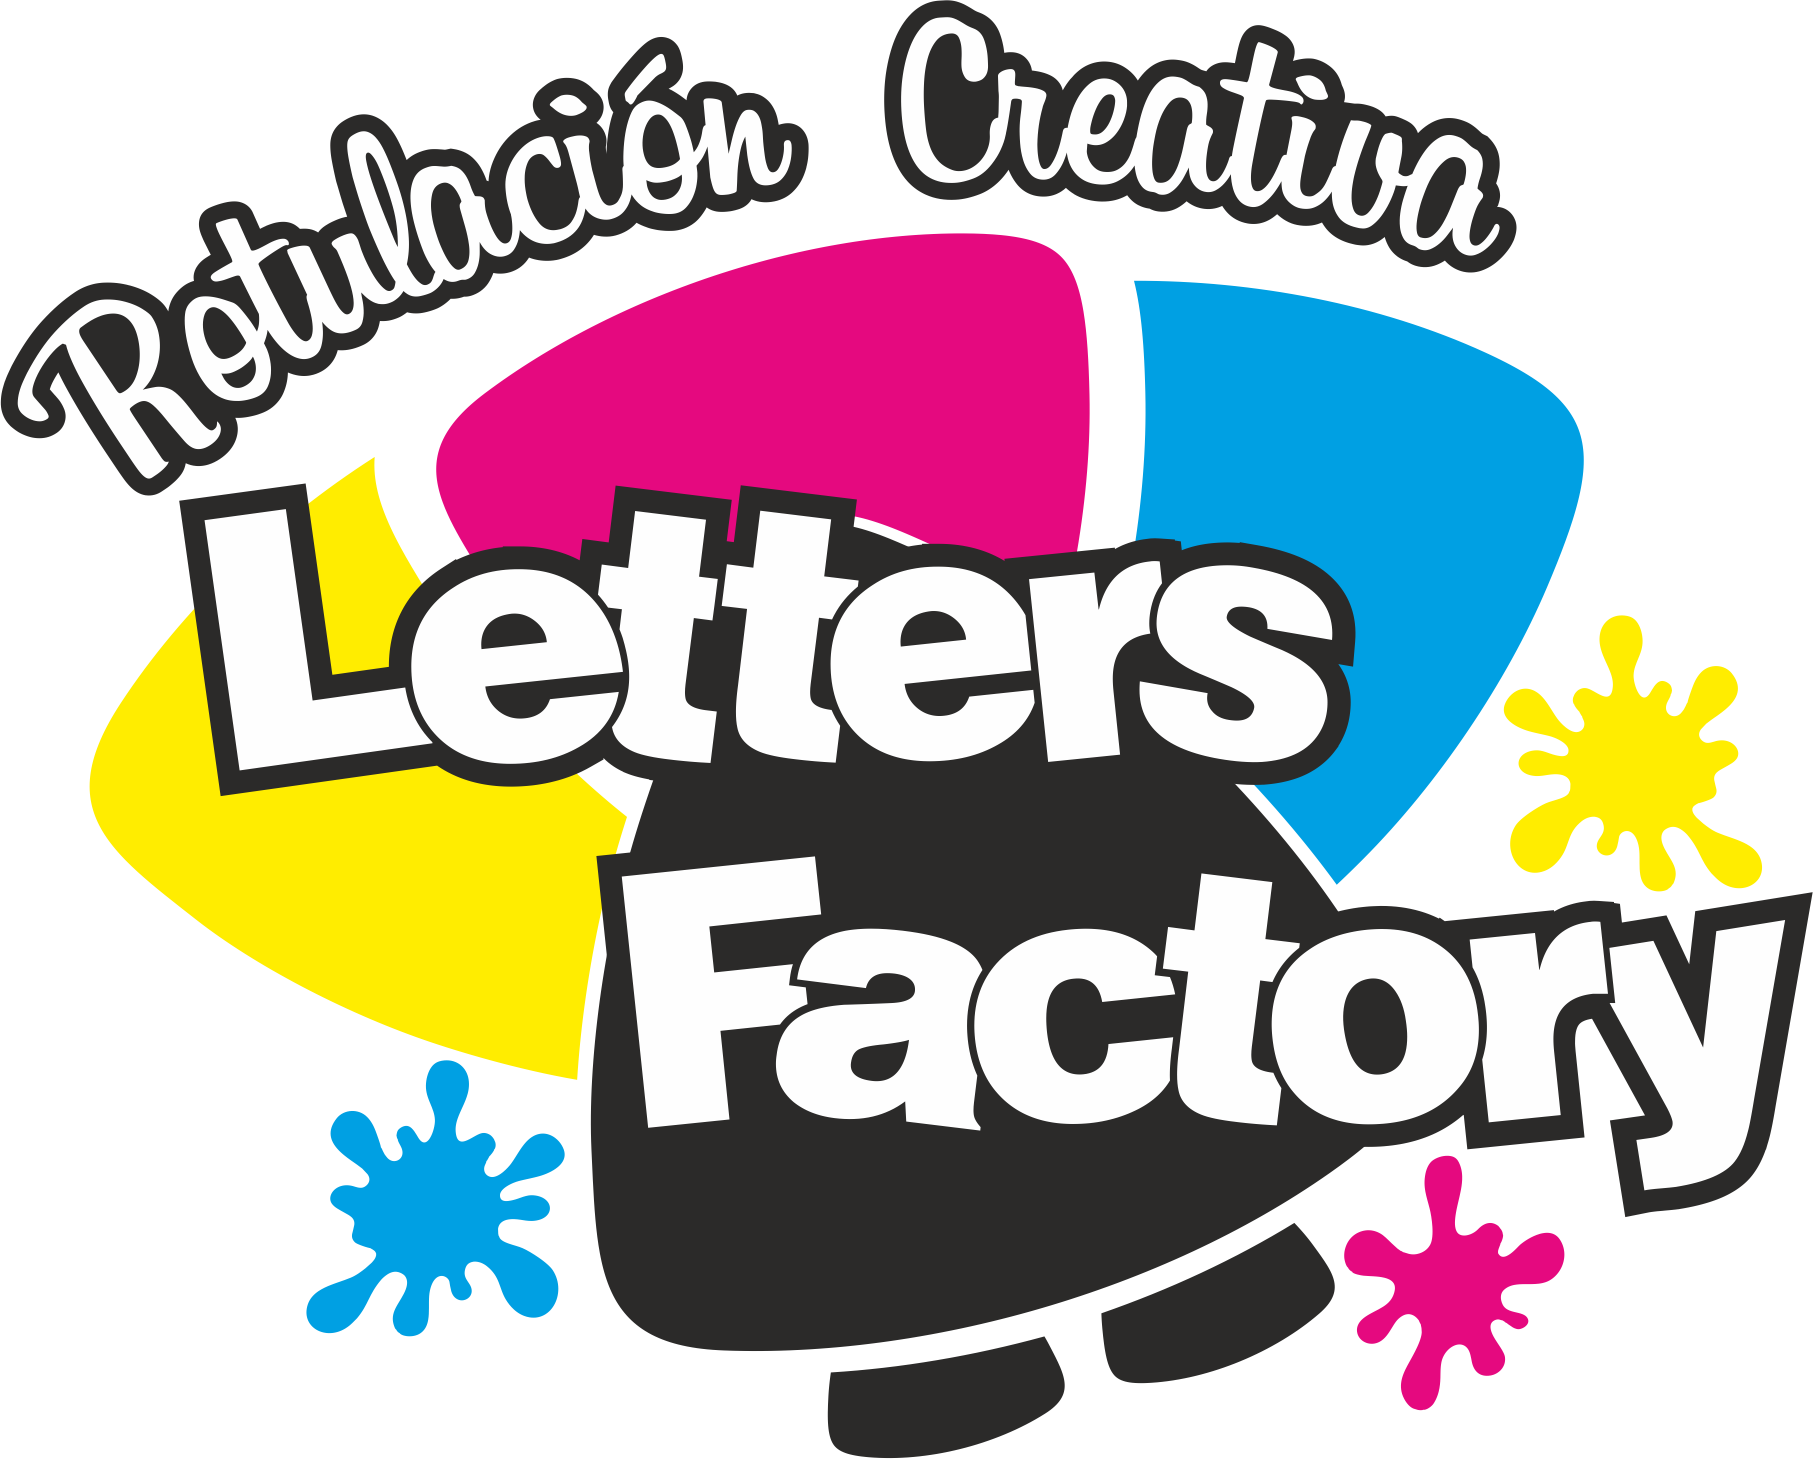 Logotipo Letters Factory